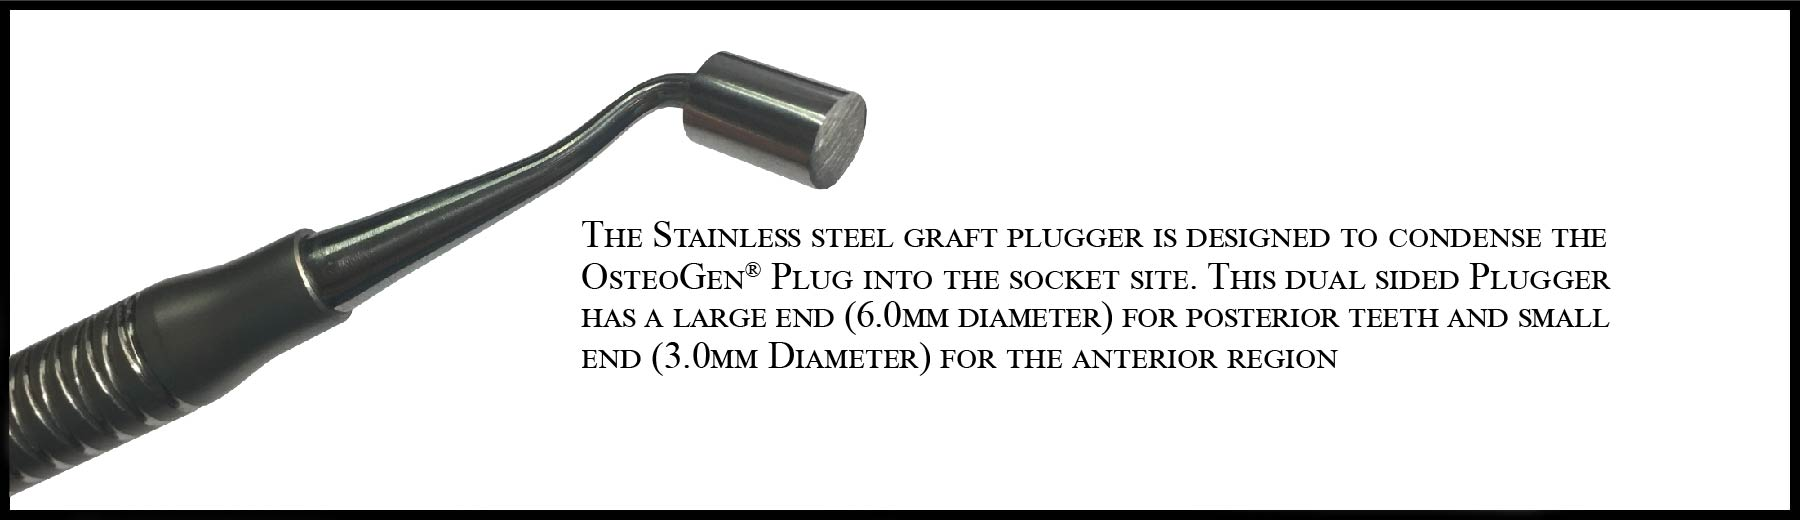 OsteoGen Plug Stainless Steel Plugger